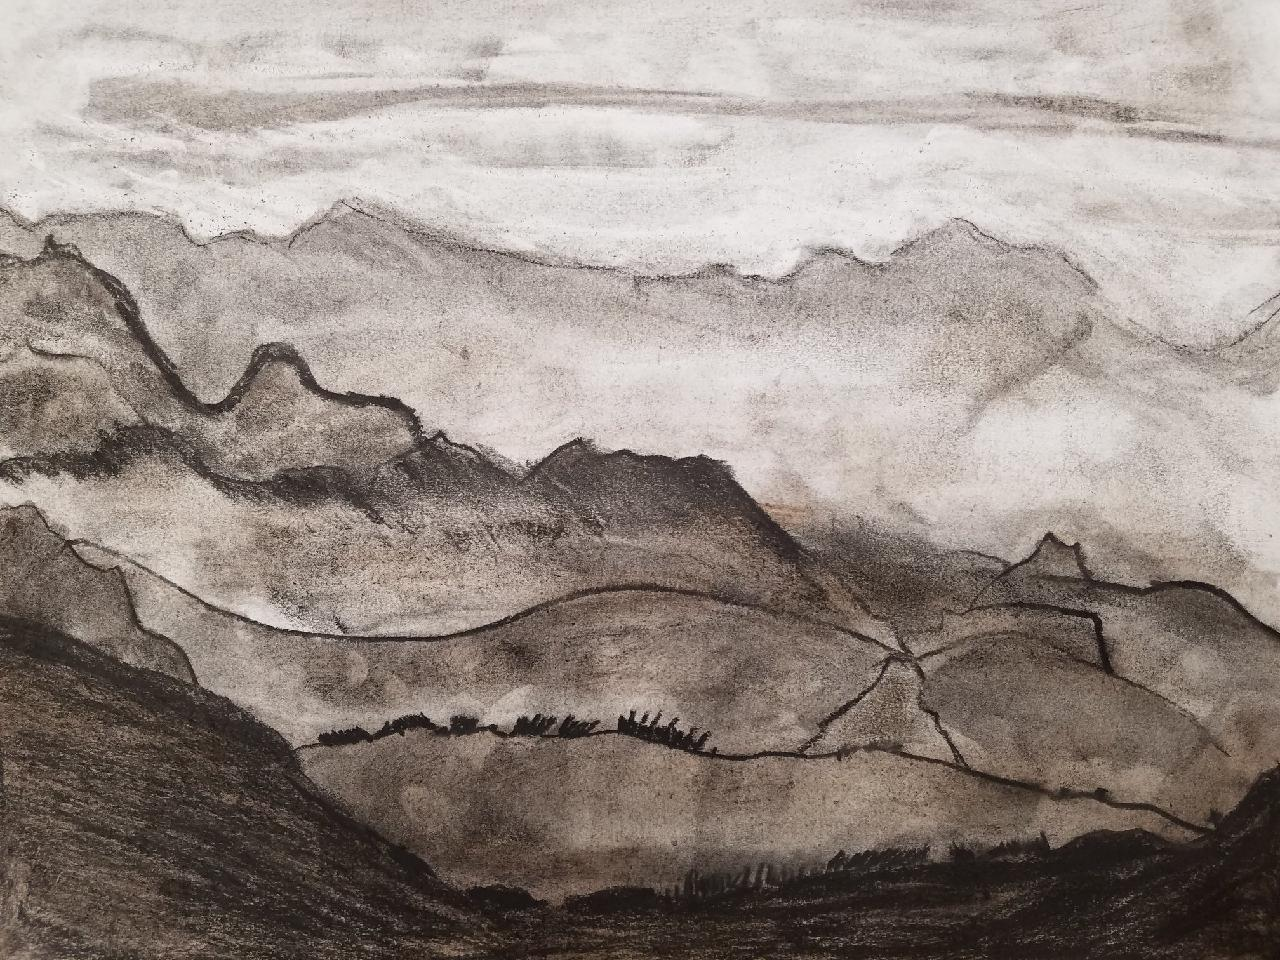 Charcoal Landscape created by Gabe at Juvenile Hall. Photo courtesy of Heidi Jumper.